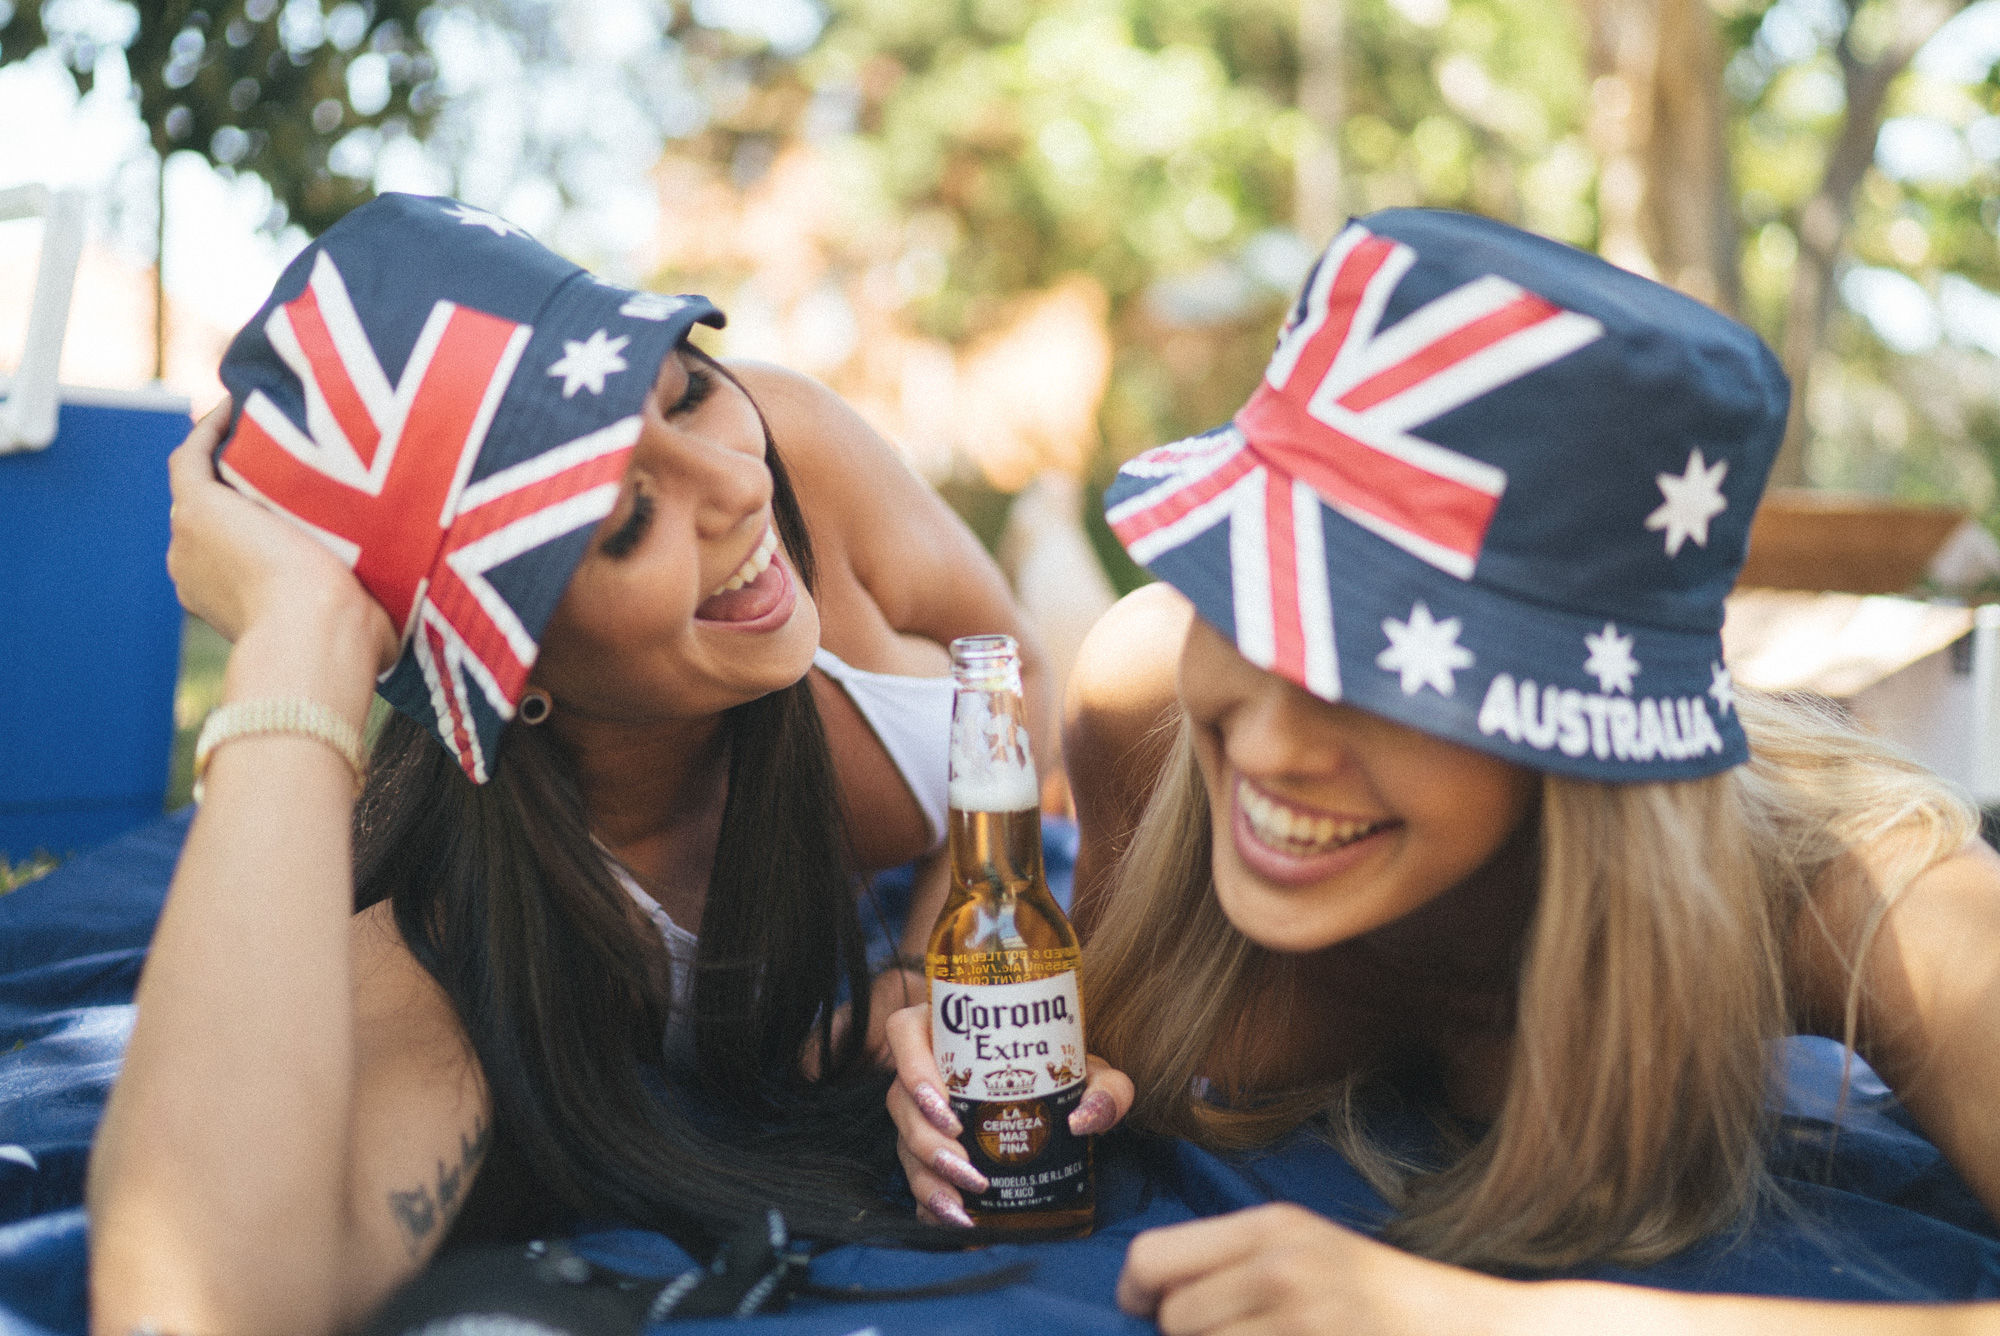 australiaday_babes_garden_shoot_justinfox_bottle_5